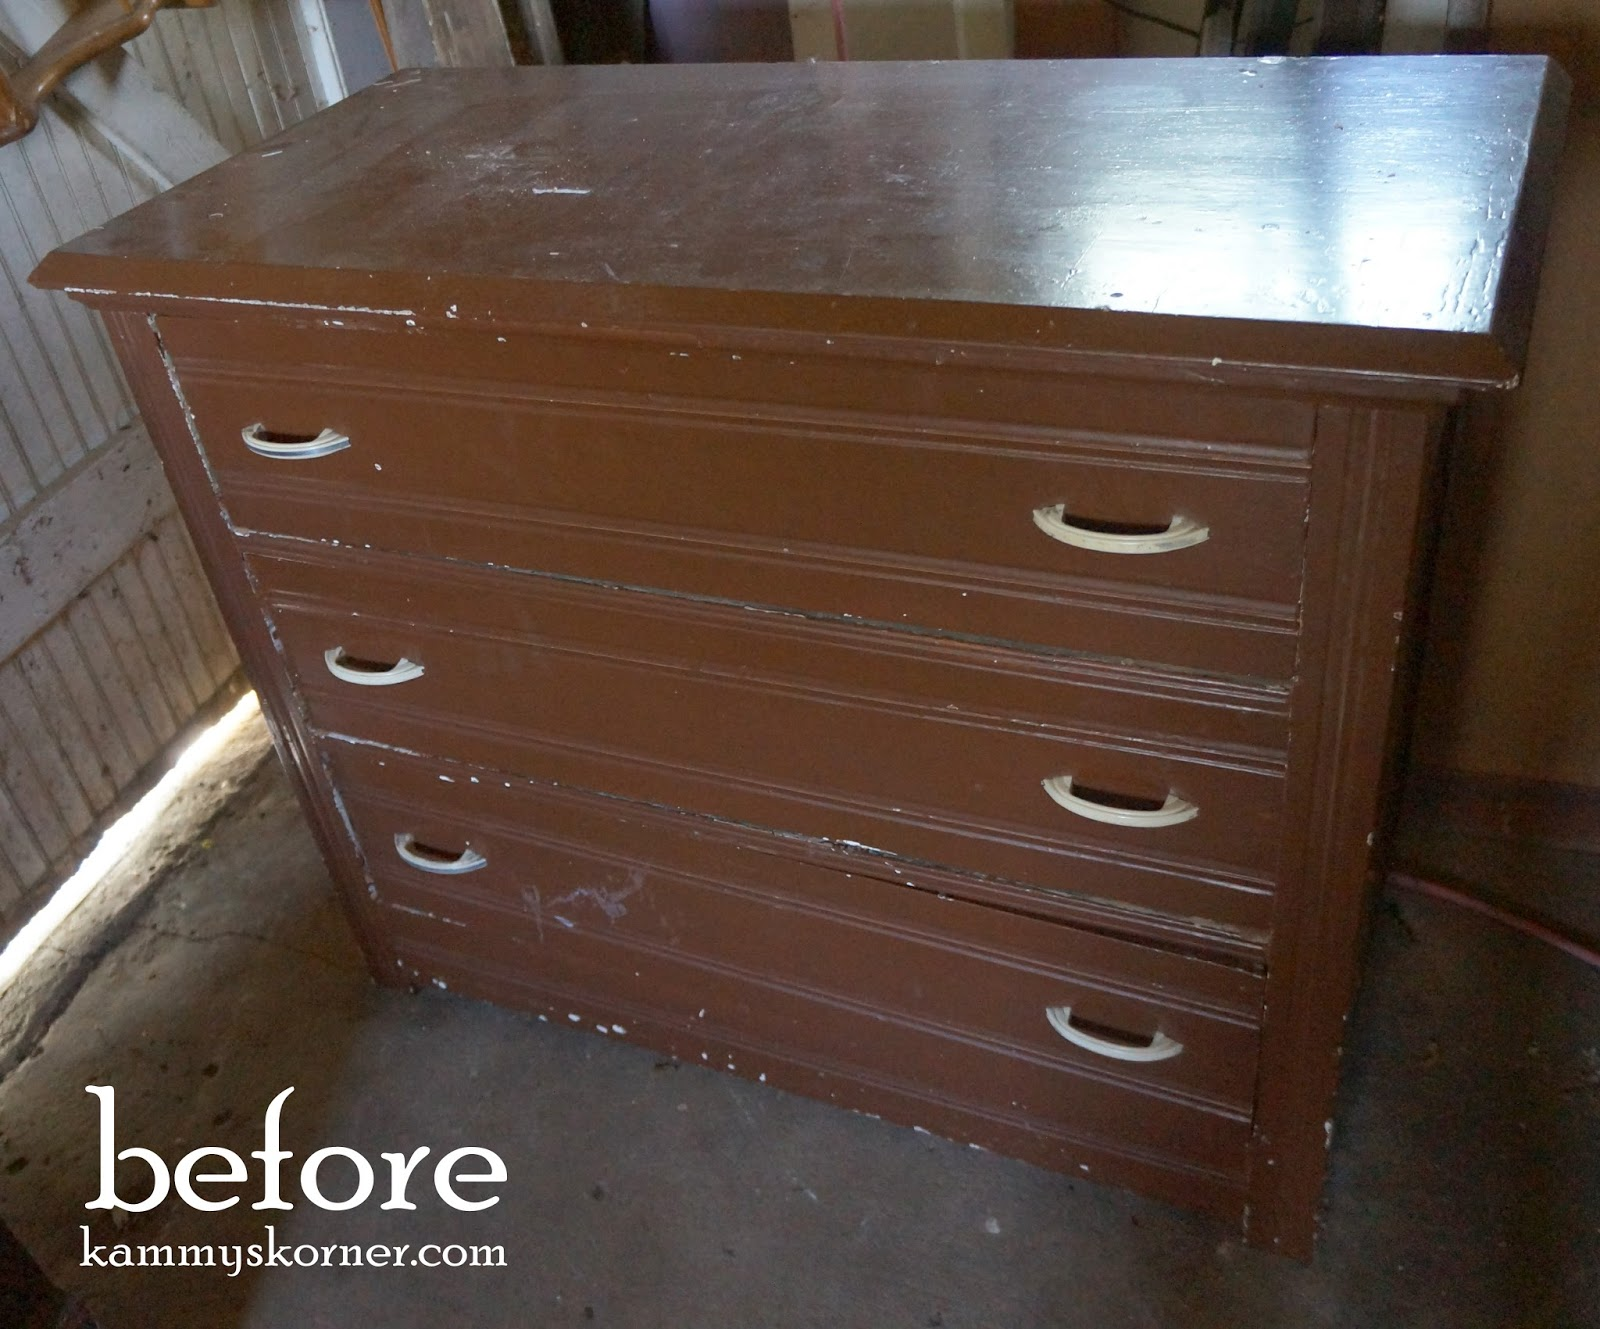 roads rustic eight storage reclaimed dr dresser cr wood with drawer country cabinets barnwood barn